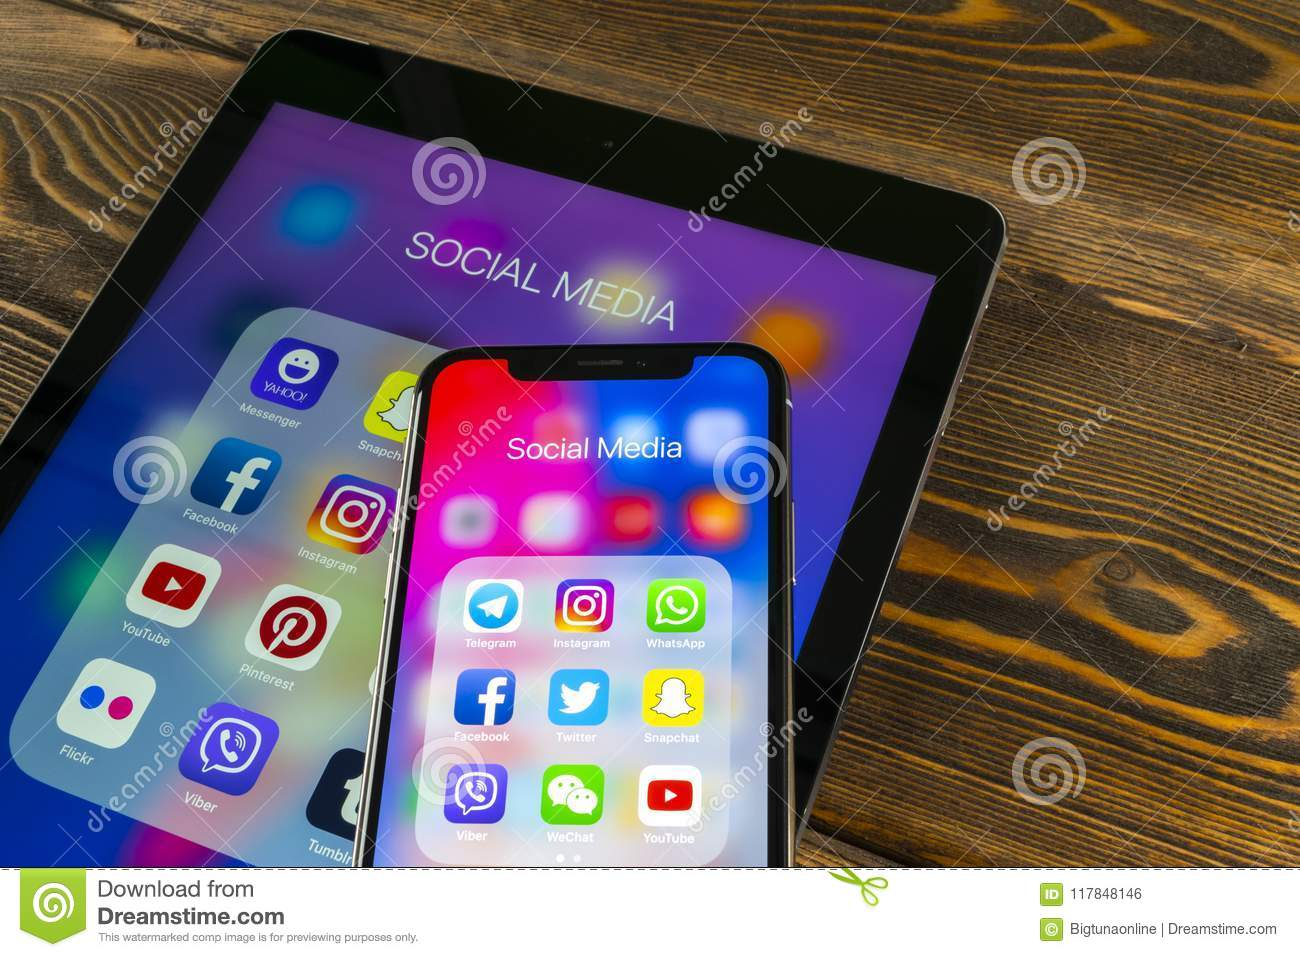 Apple iPad and iPhone X with icons of social media facebook, instagram, twitter, snapchat application on screen. Social media icon